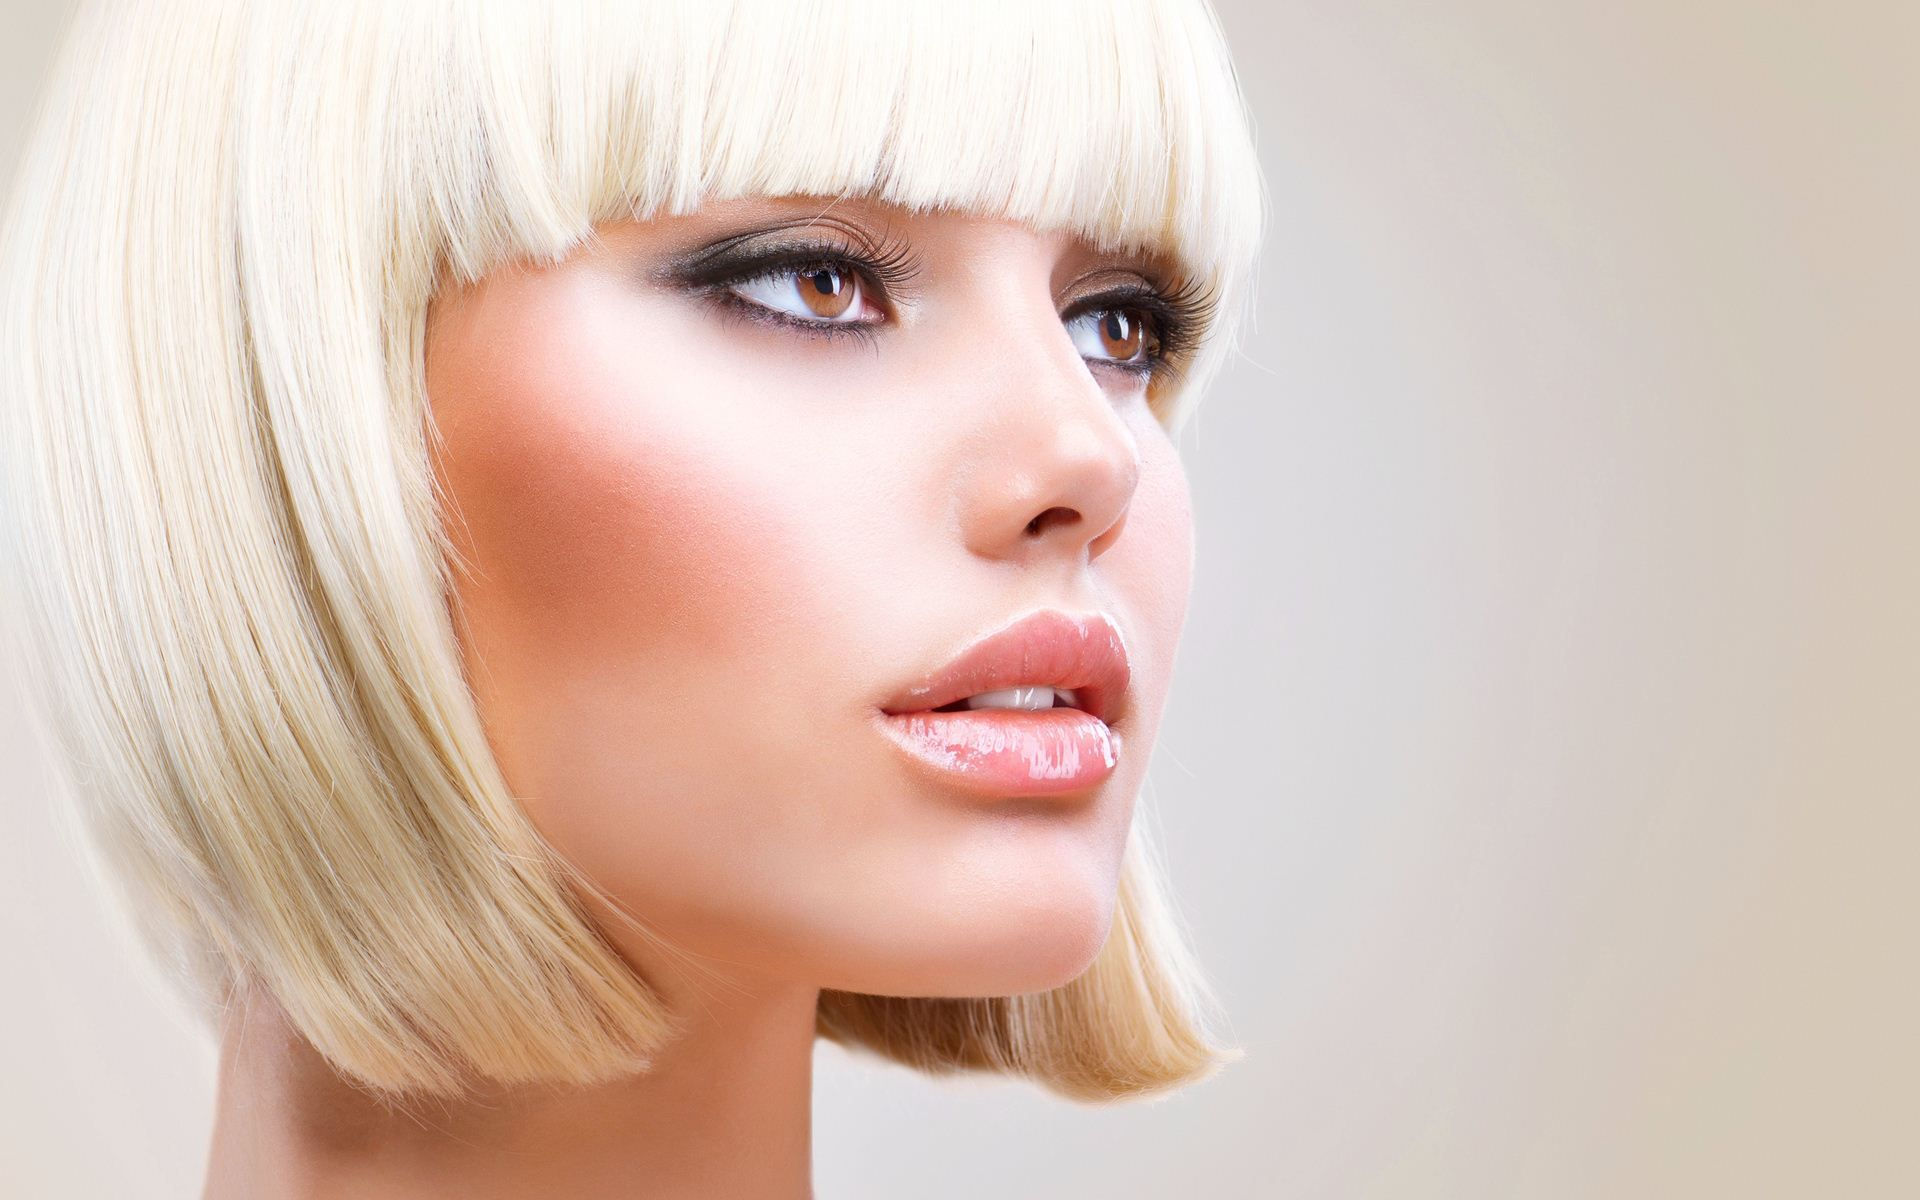 beauty look wallpapers: Head And Face Photo References